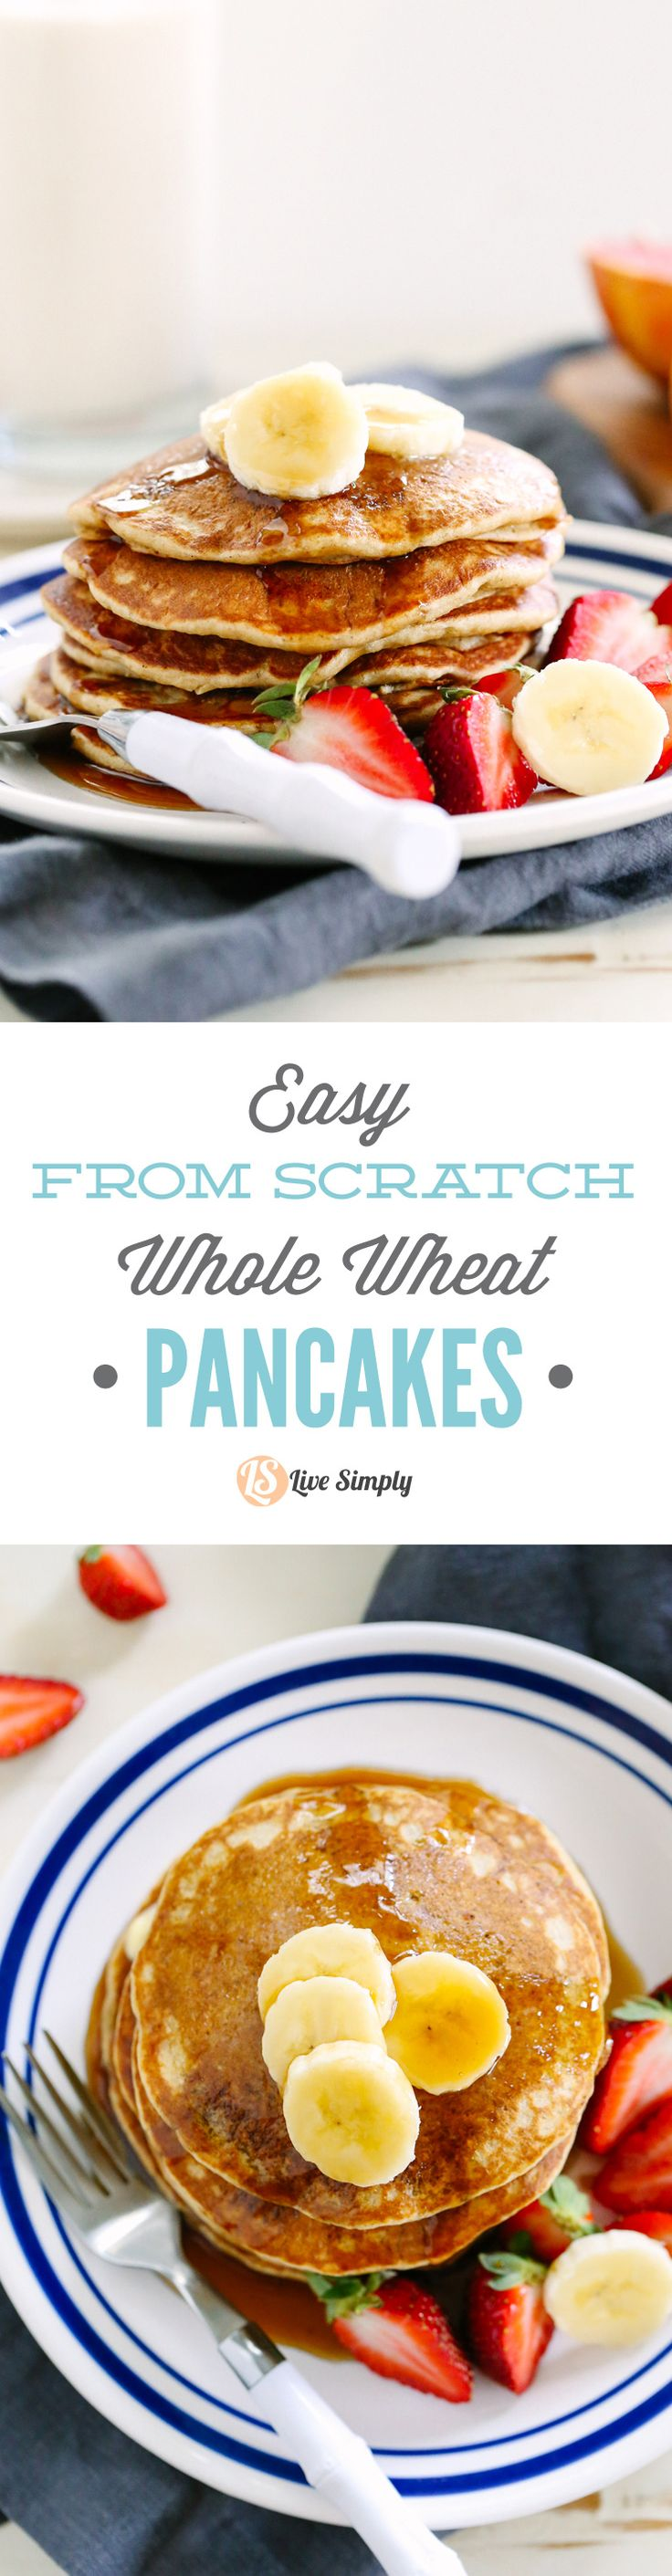 """""""From scratch"""" whole wheat pancakes that taste amazing! No boxed ingredients, just healthy real food. Love this. Make in advance and freeze the extras for busy mornings."""